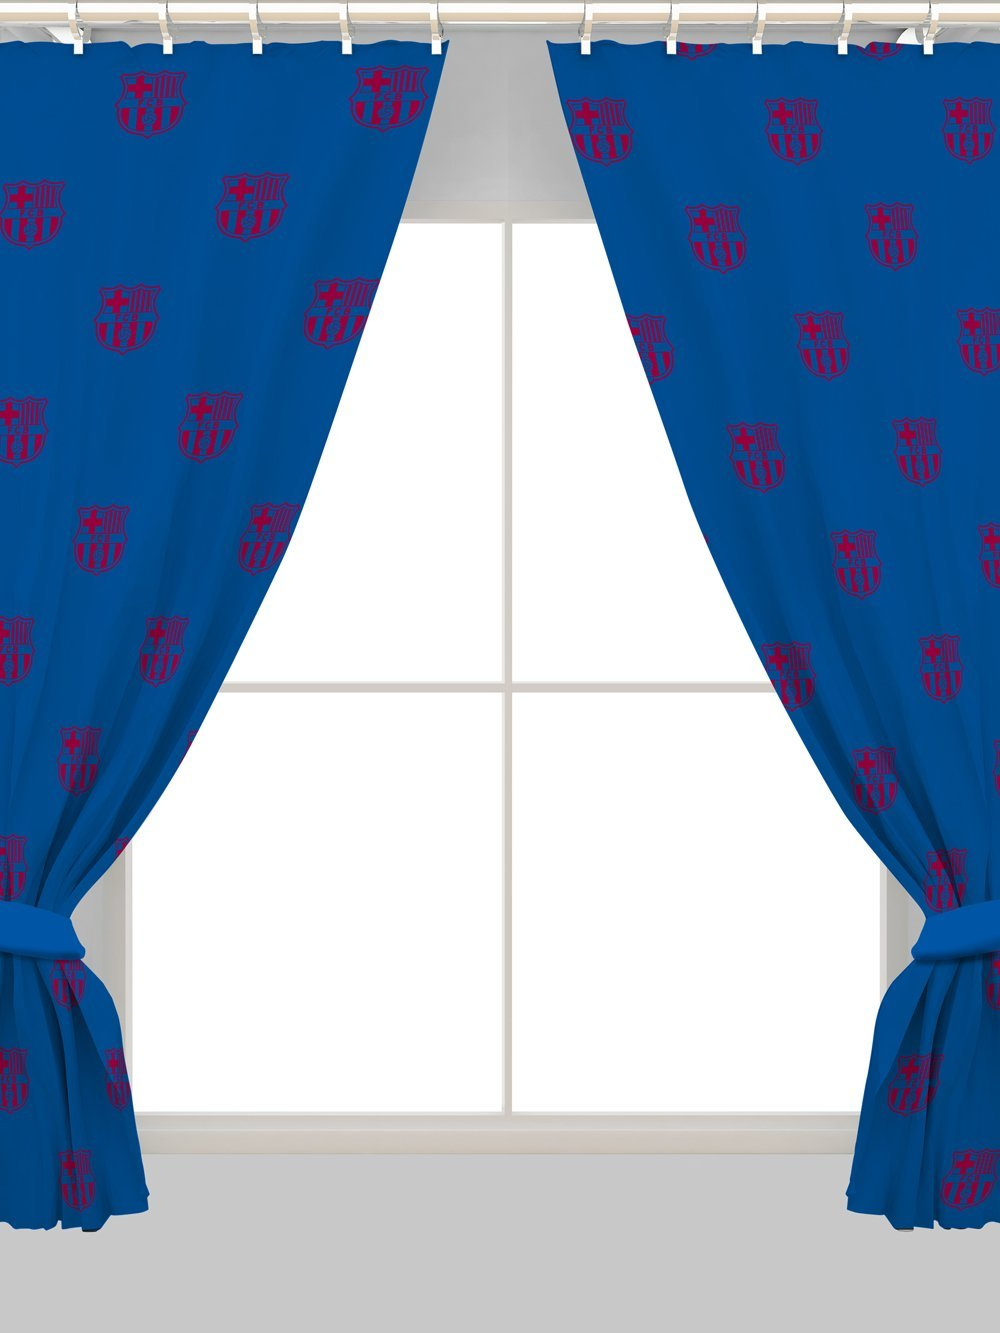 New barcelona fc ready made curtains pair set 66x54 inch for Crest home designs curtains